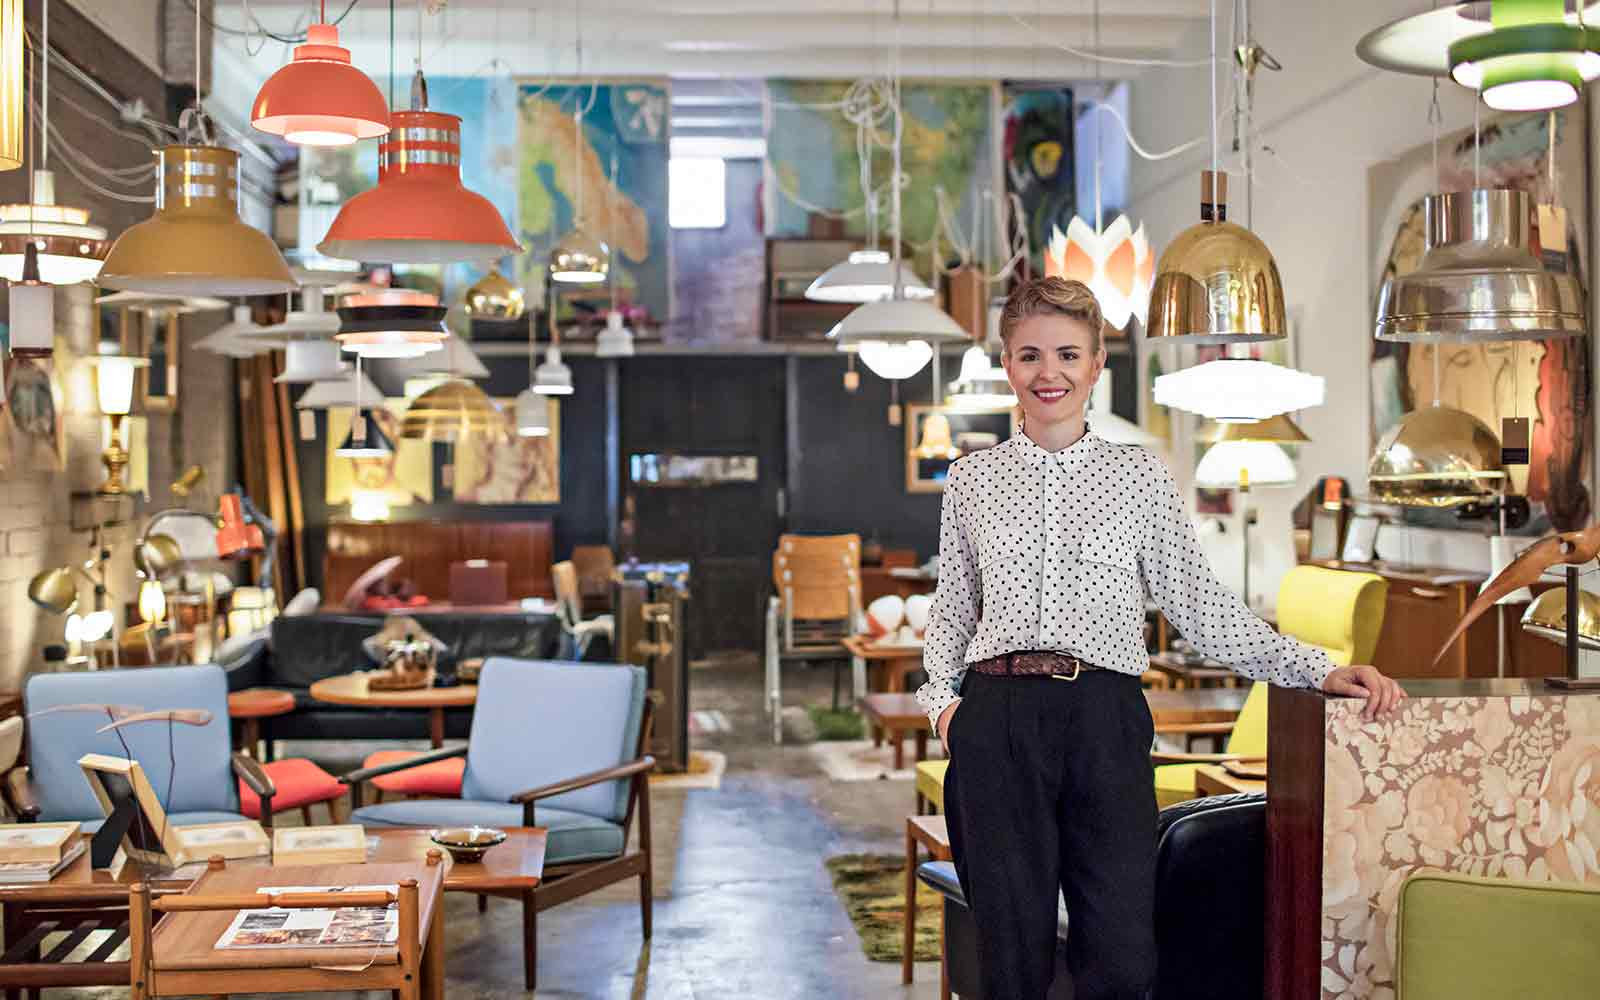 furniture shop owner who can benefit from unsecured business loans